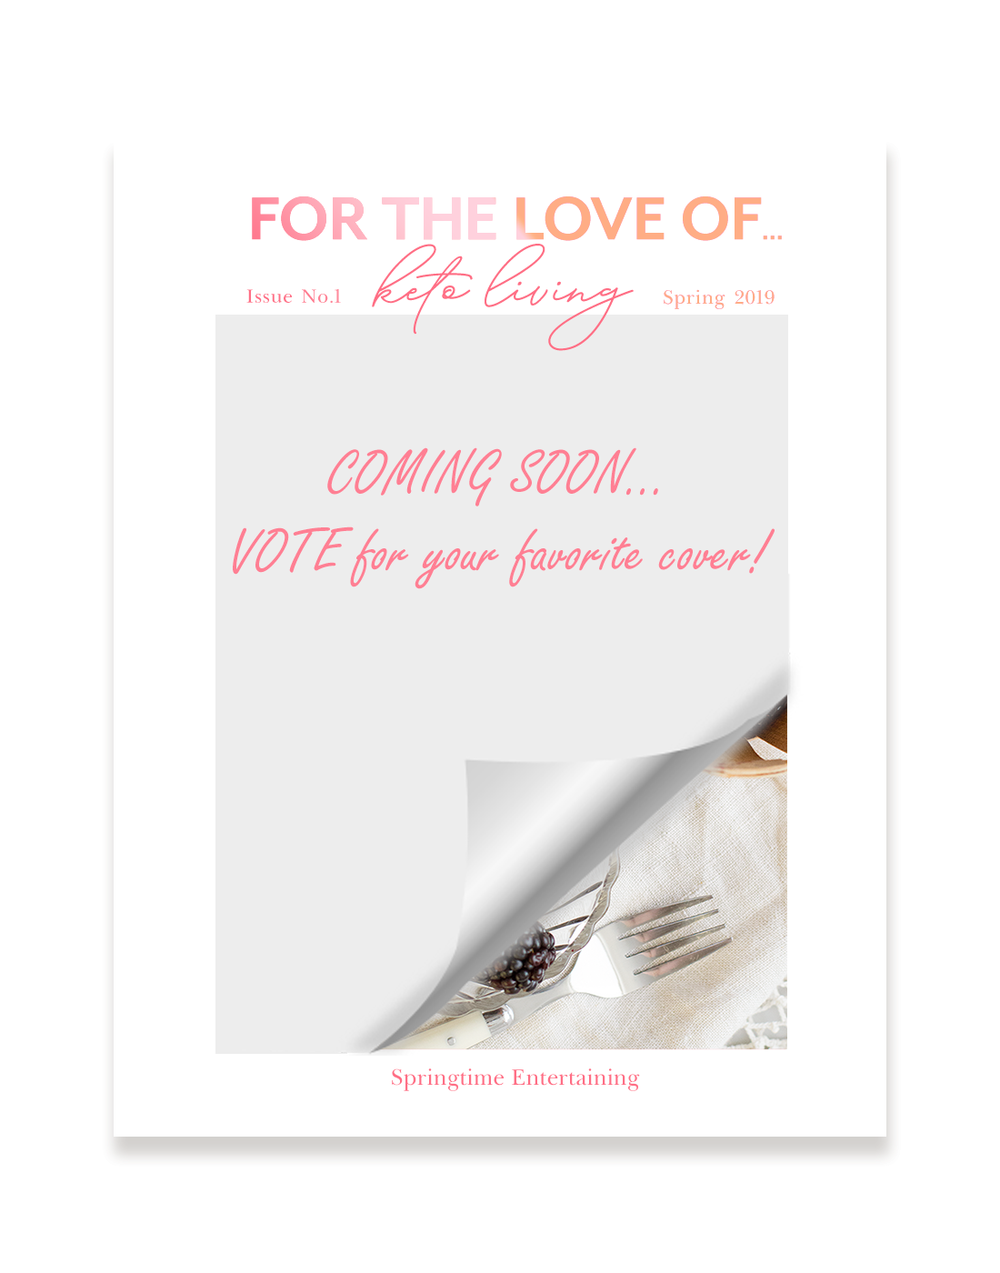 FOR THE LOVE OF KETO MAGAZINE - 2019 SPRING COVER VOTE.png